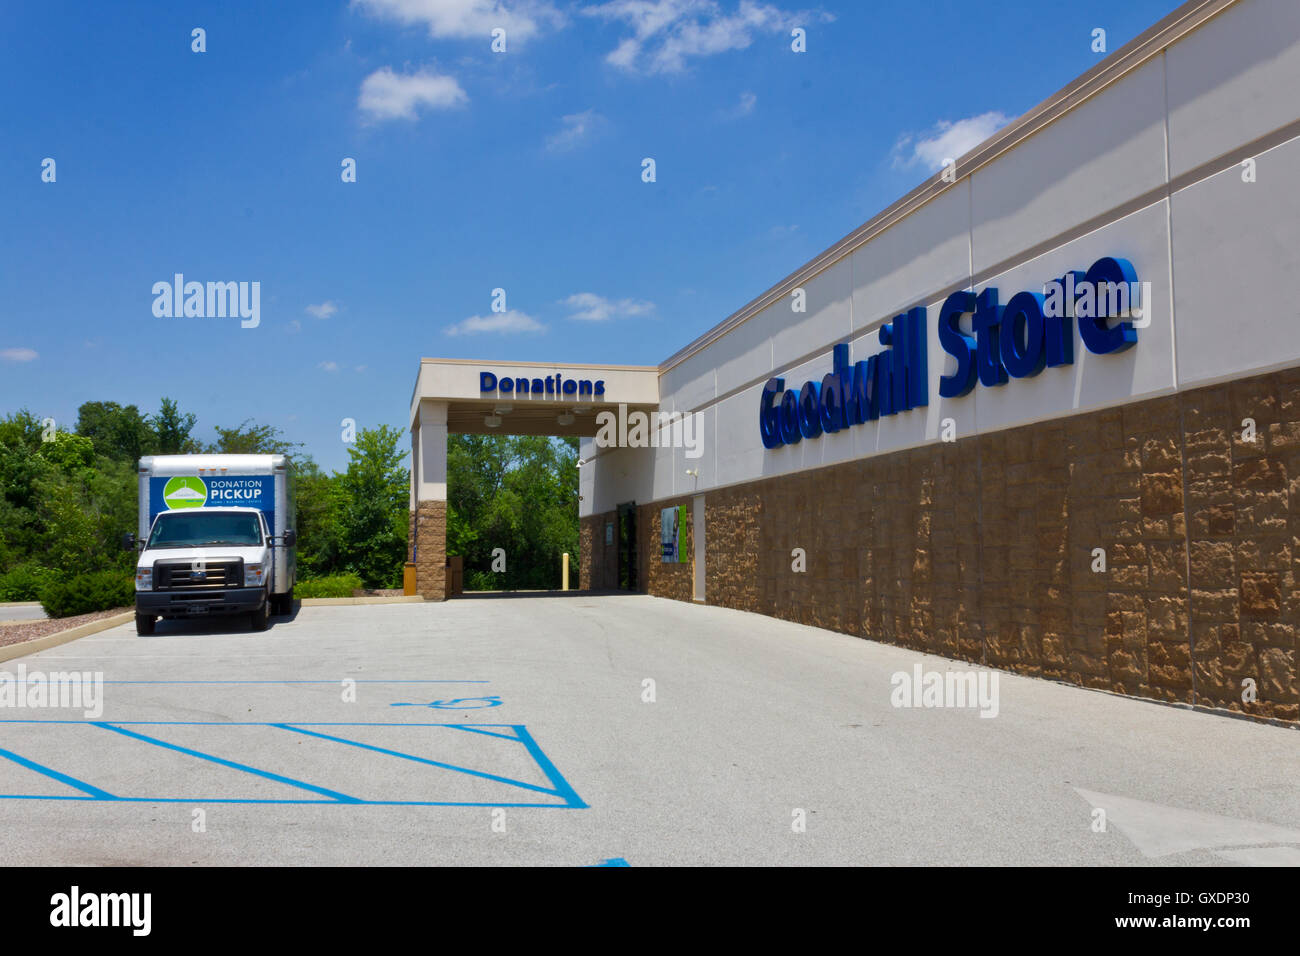 Indianapolis - Circa June 2016: A Goodwill Store. In 2015, Goodwill helped more than 26.4 million people train for - Stock Image